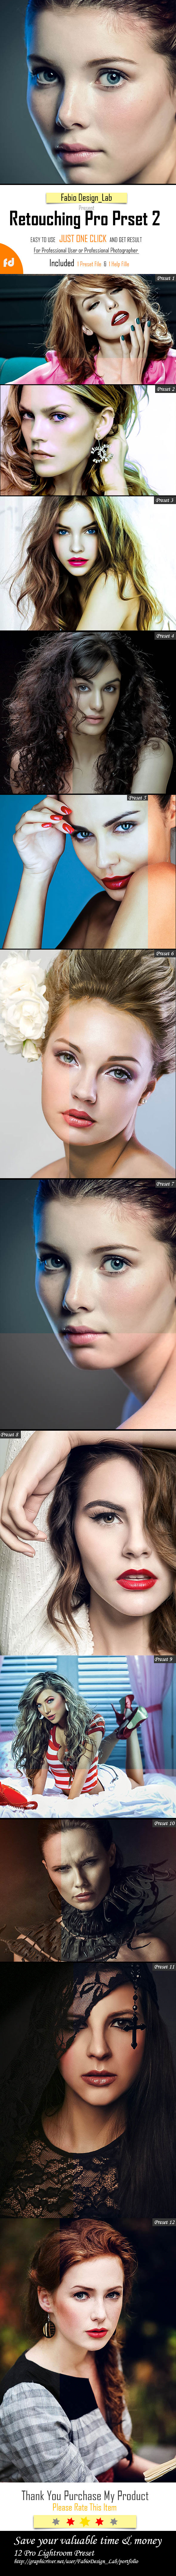 GraphicRiver Retouching Pro Preset Vol.2 11878533